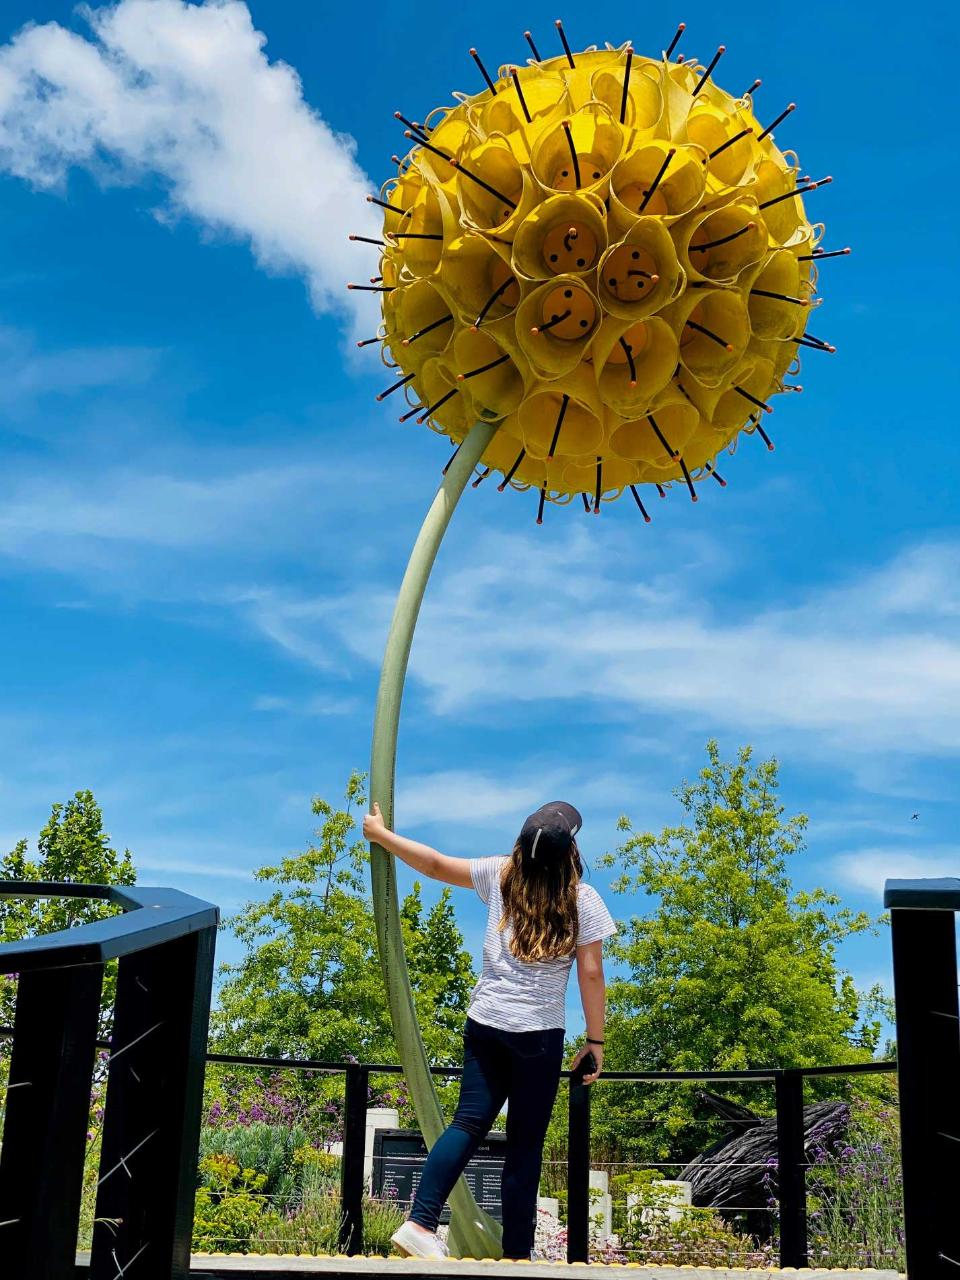 The Sculptureum Experience - Half Price Artistic Afternoons